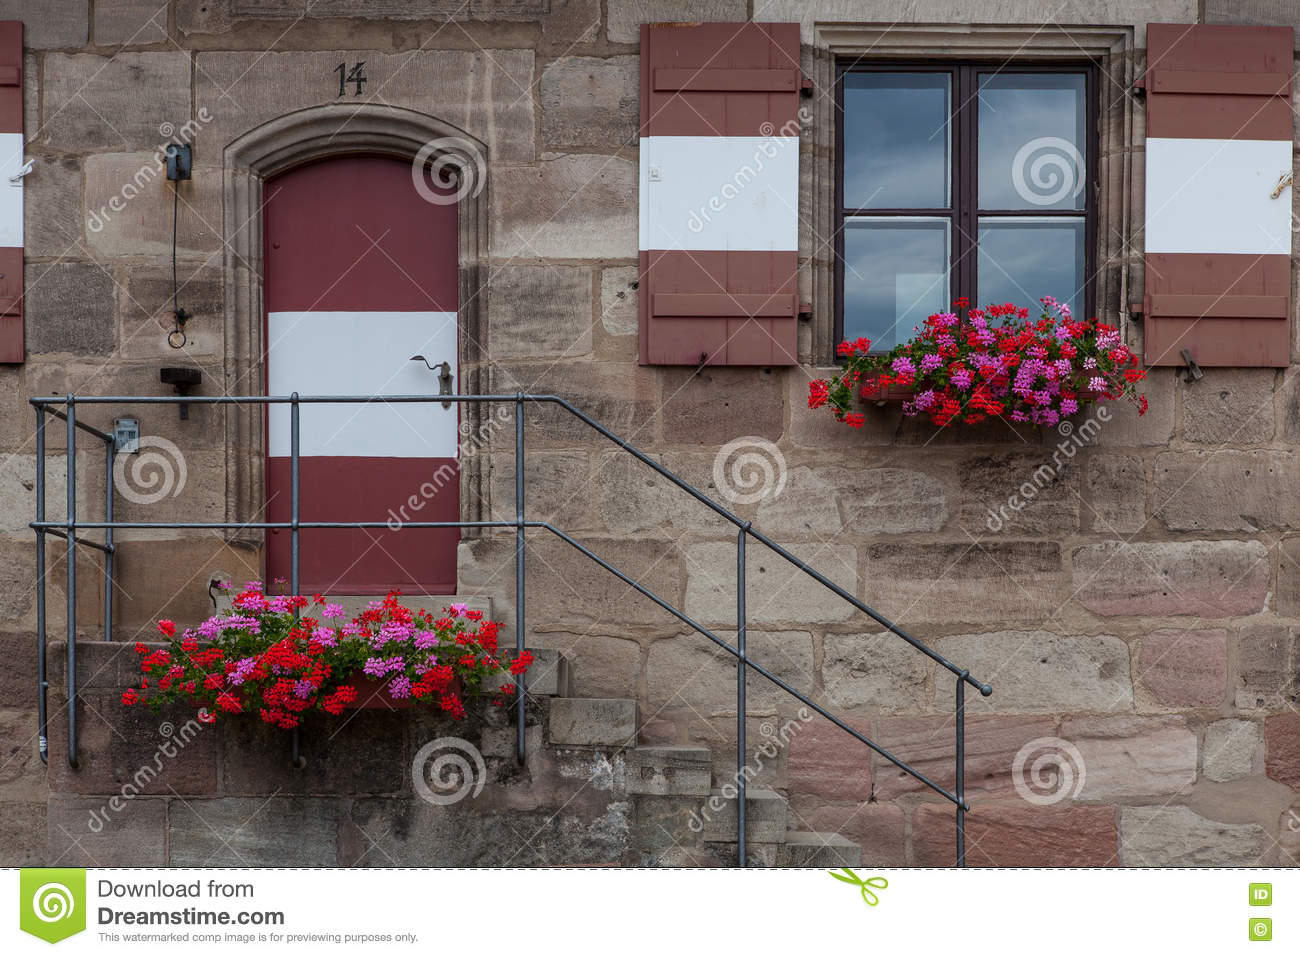 Windows and doors in the old European style